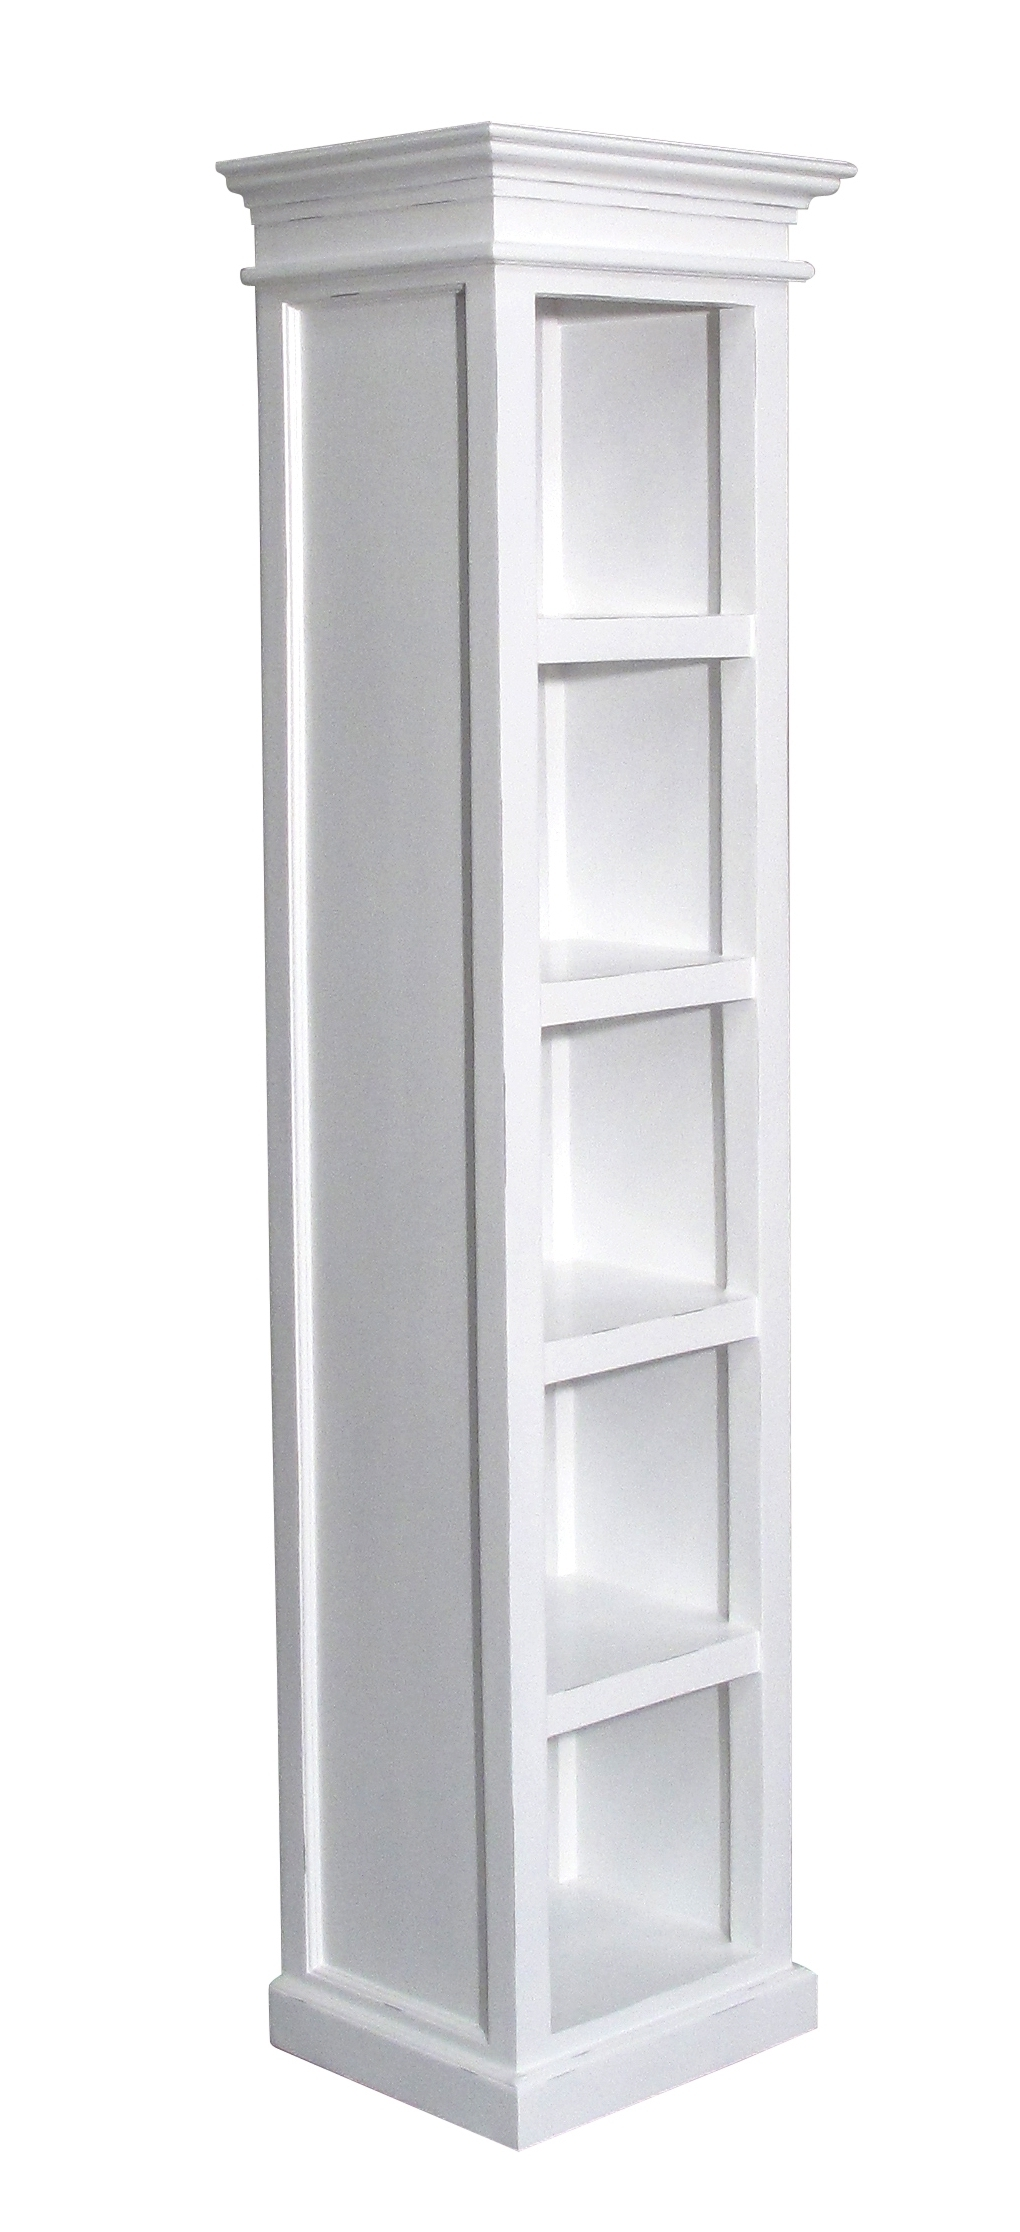 Thin Bookcases With Regard To Popular Tall Slim Bookcase Amazing Picture Design Awesome Thin Ideas Room (View 14 of 15)